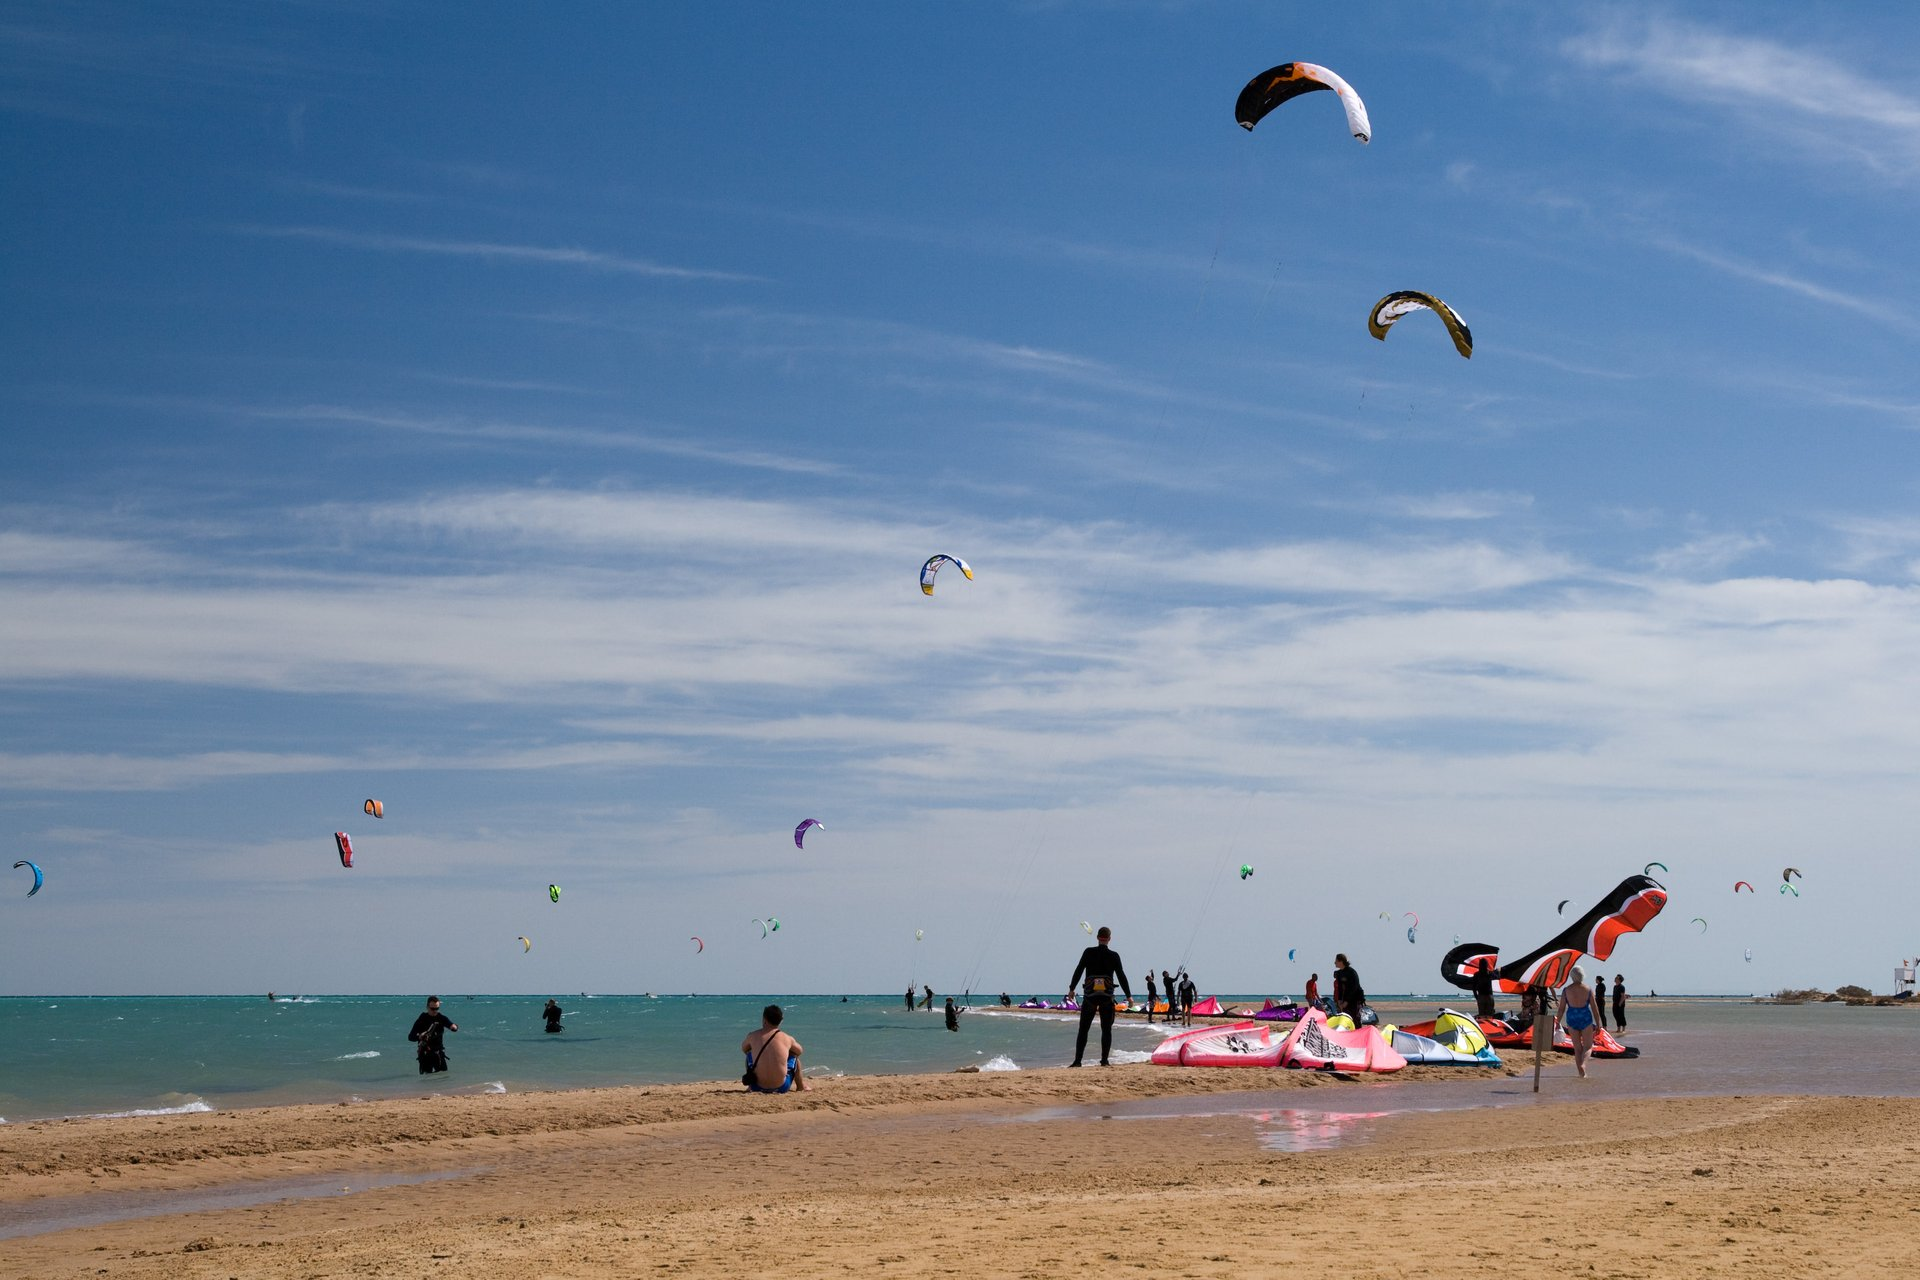 Kitesurfing in El Gouna in Egypt - Best Season 2020